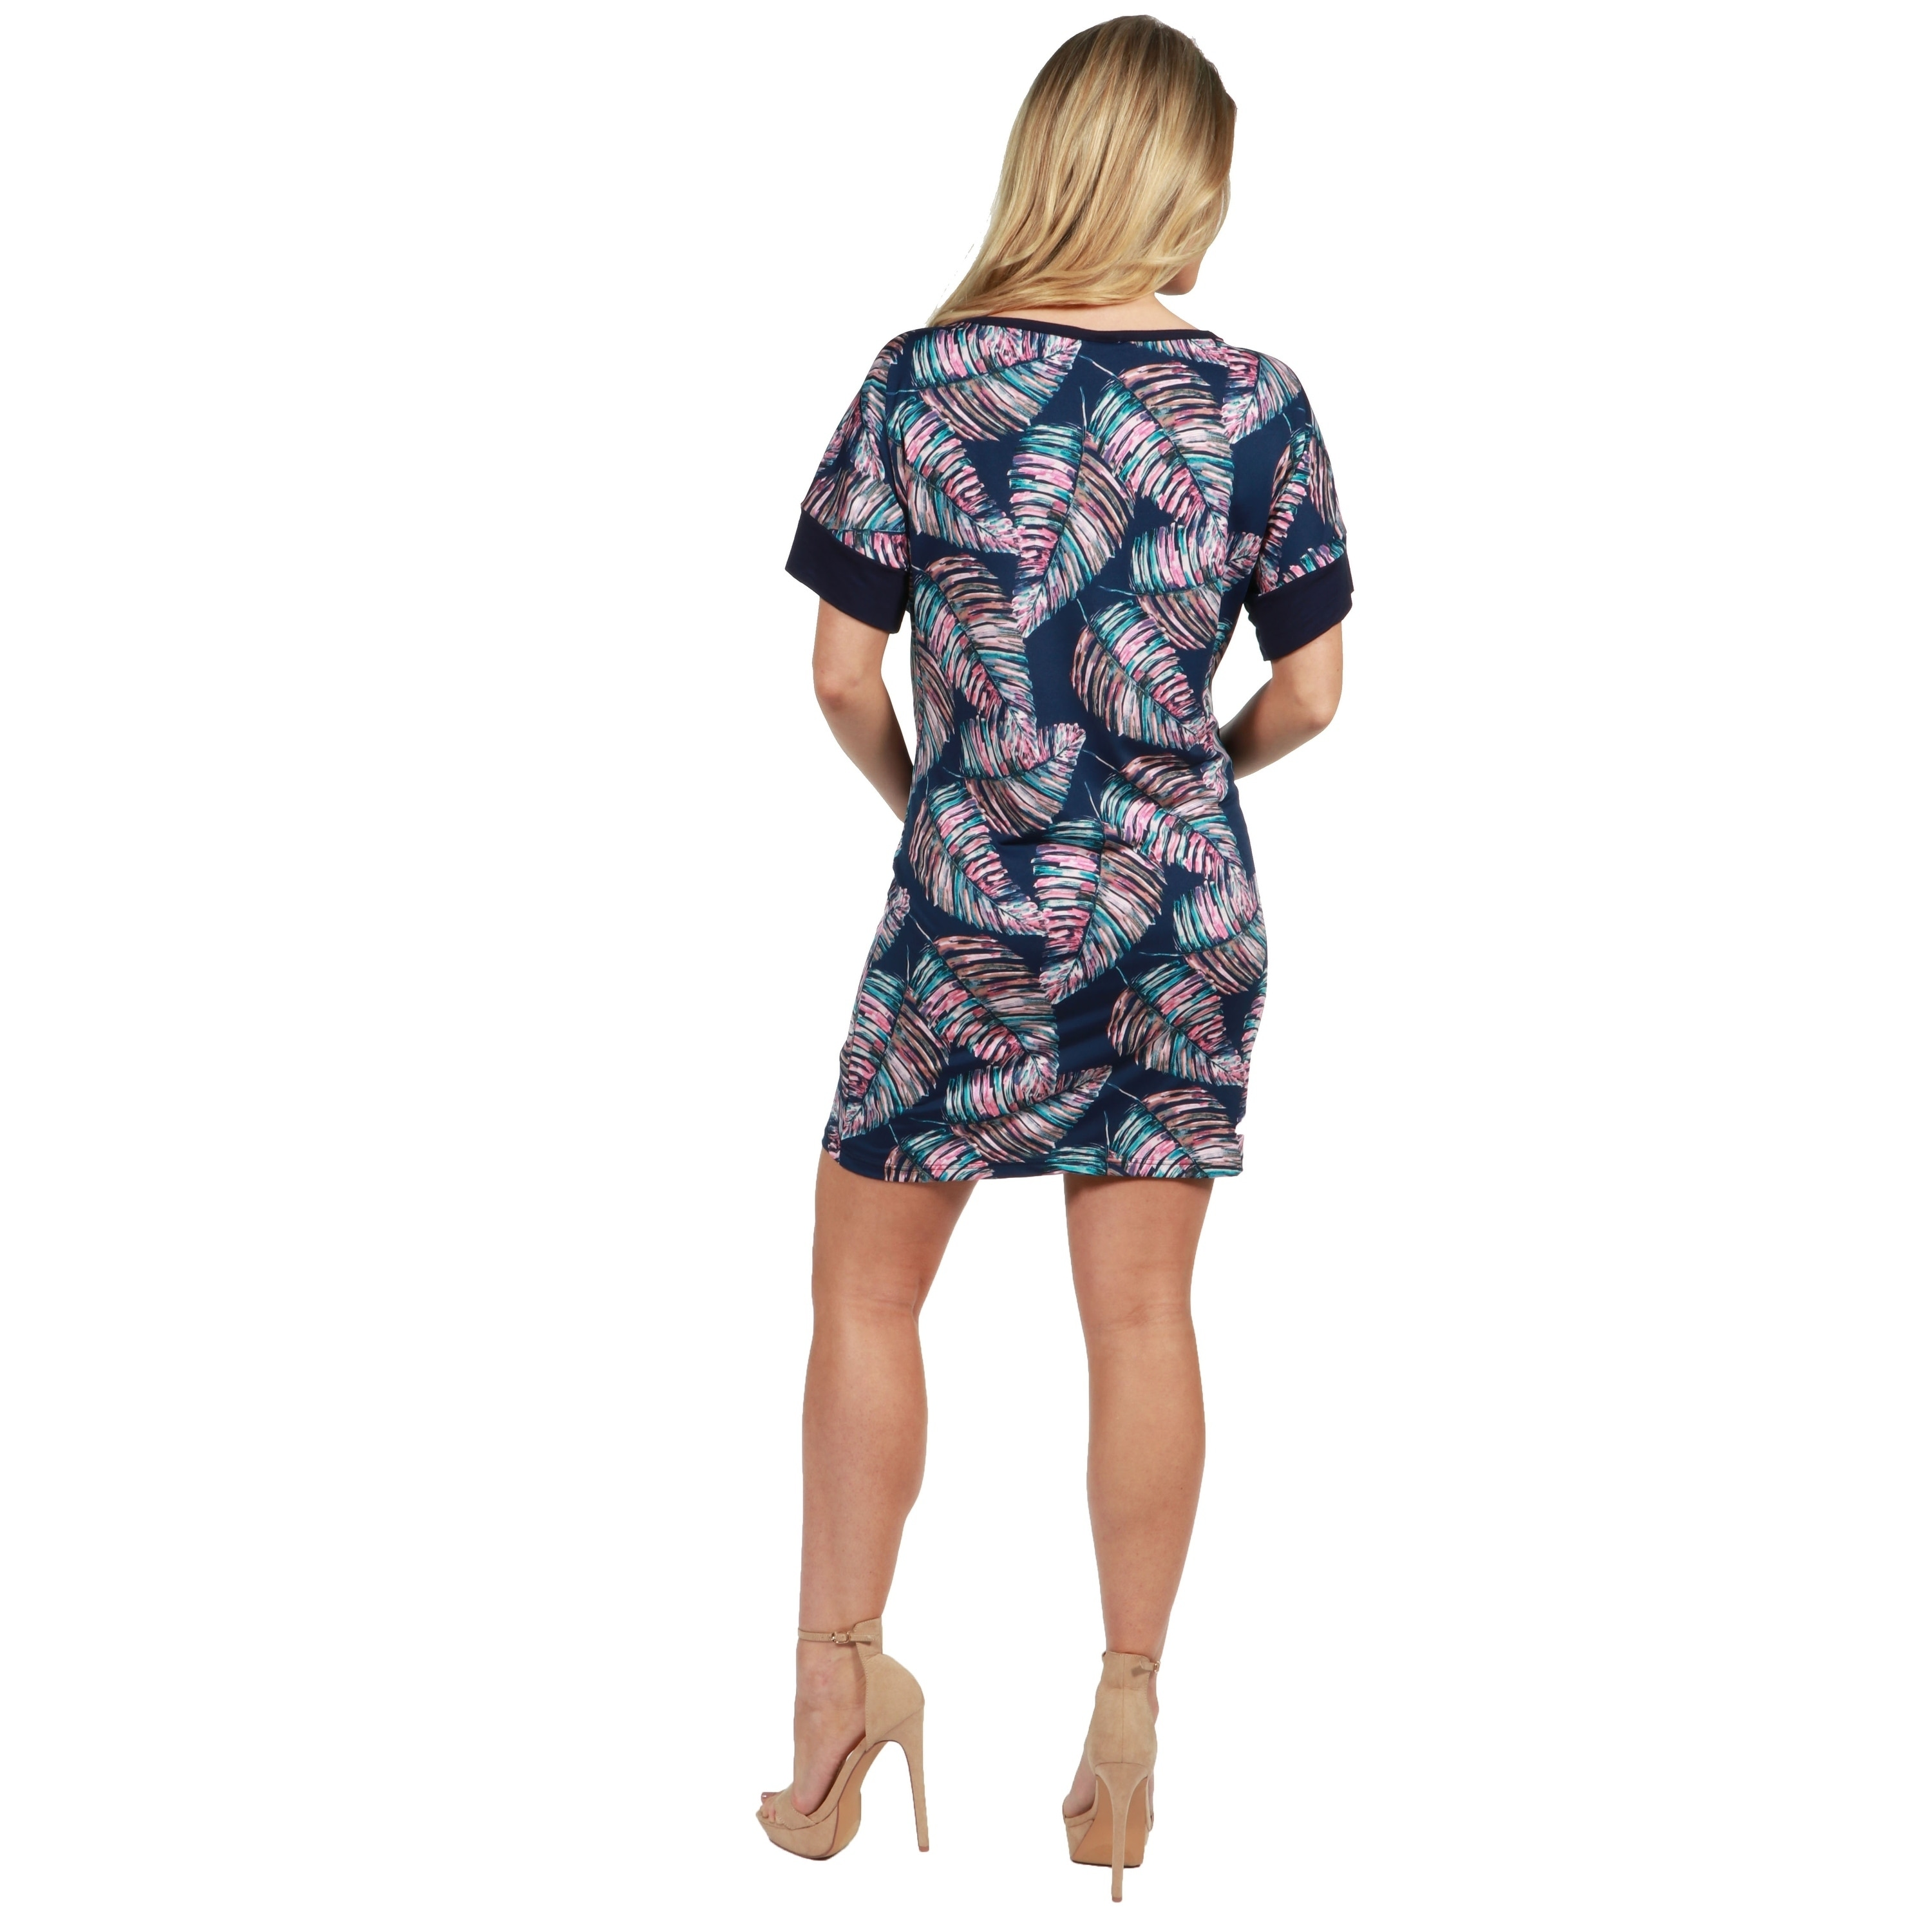 62589fdce6e Shop 24Seven Comfort Apparel Taylor Blue Feather Print Maternity Mini Dress  - Free Shipping On Orders Over  45 - Overstock - 21026070